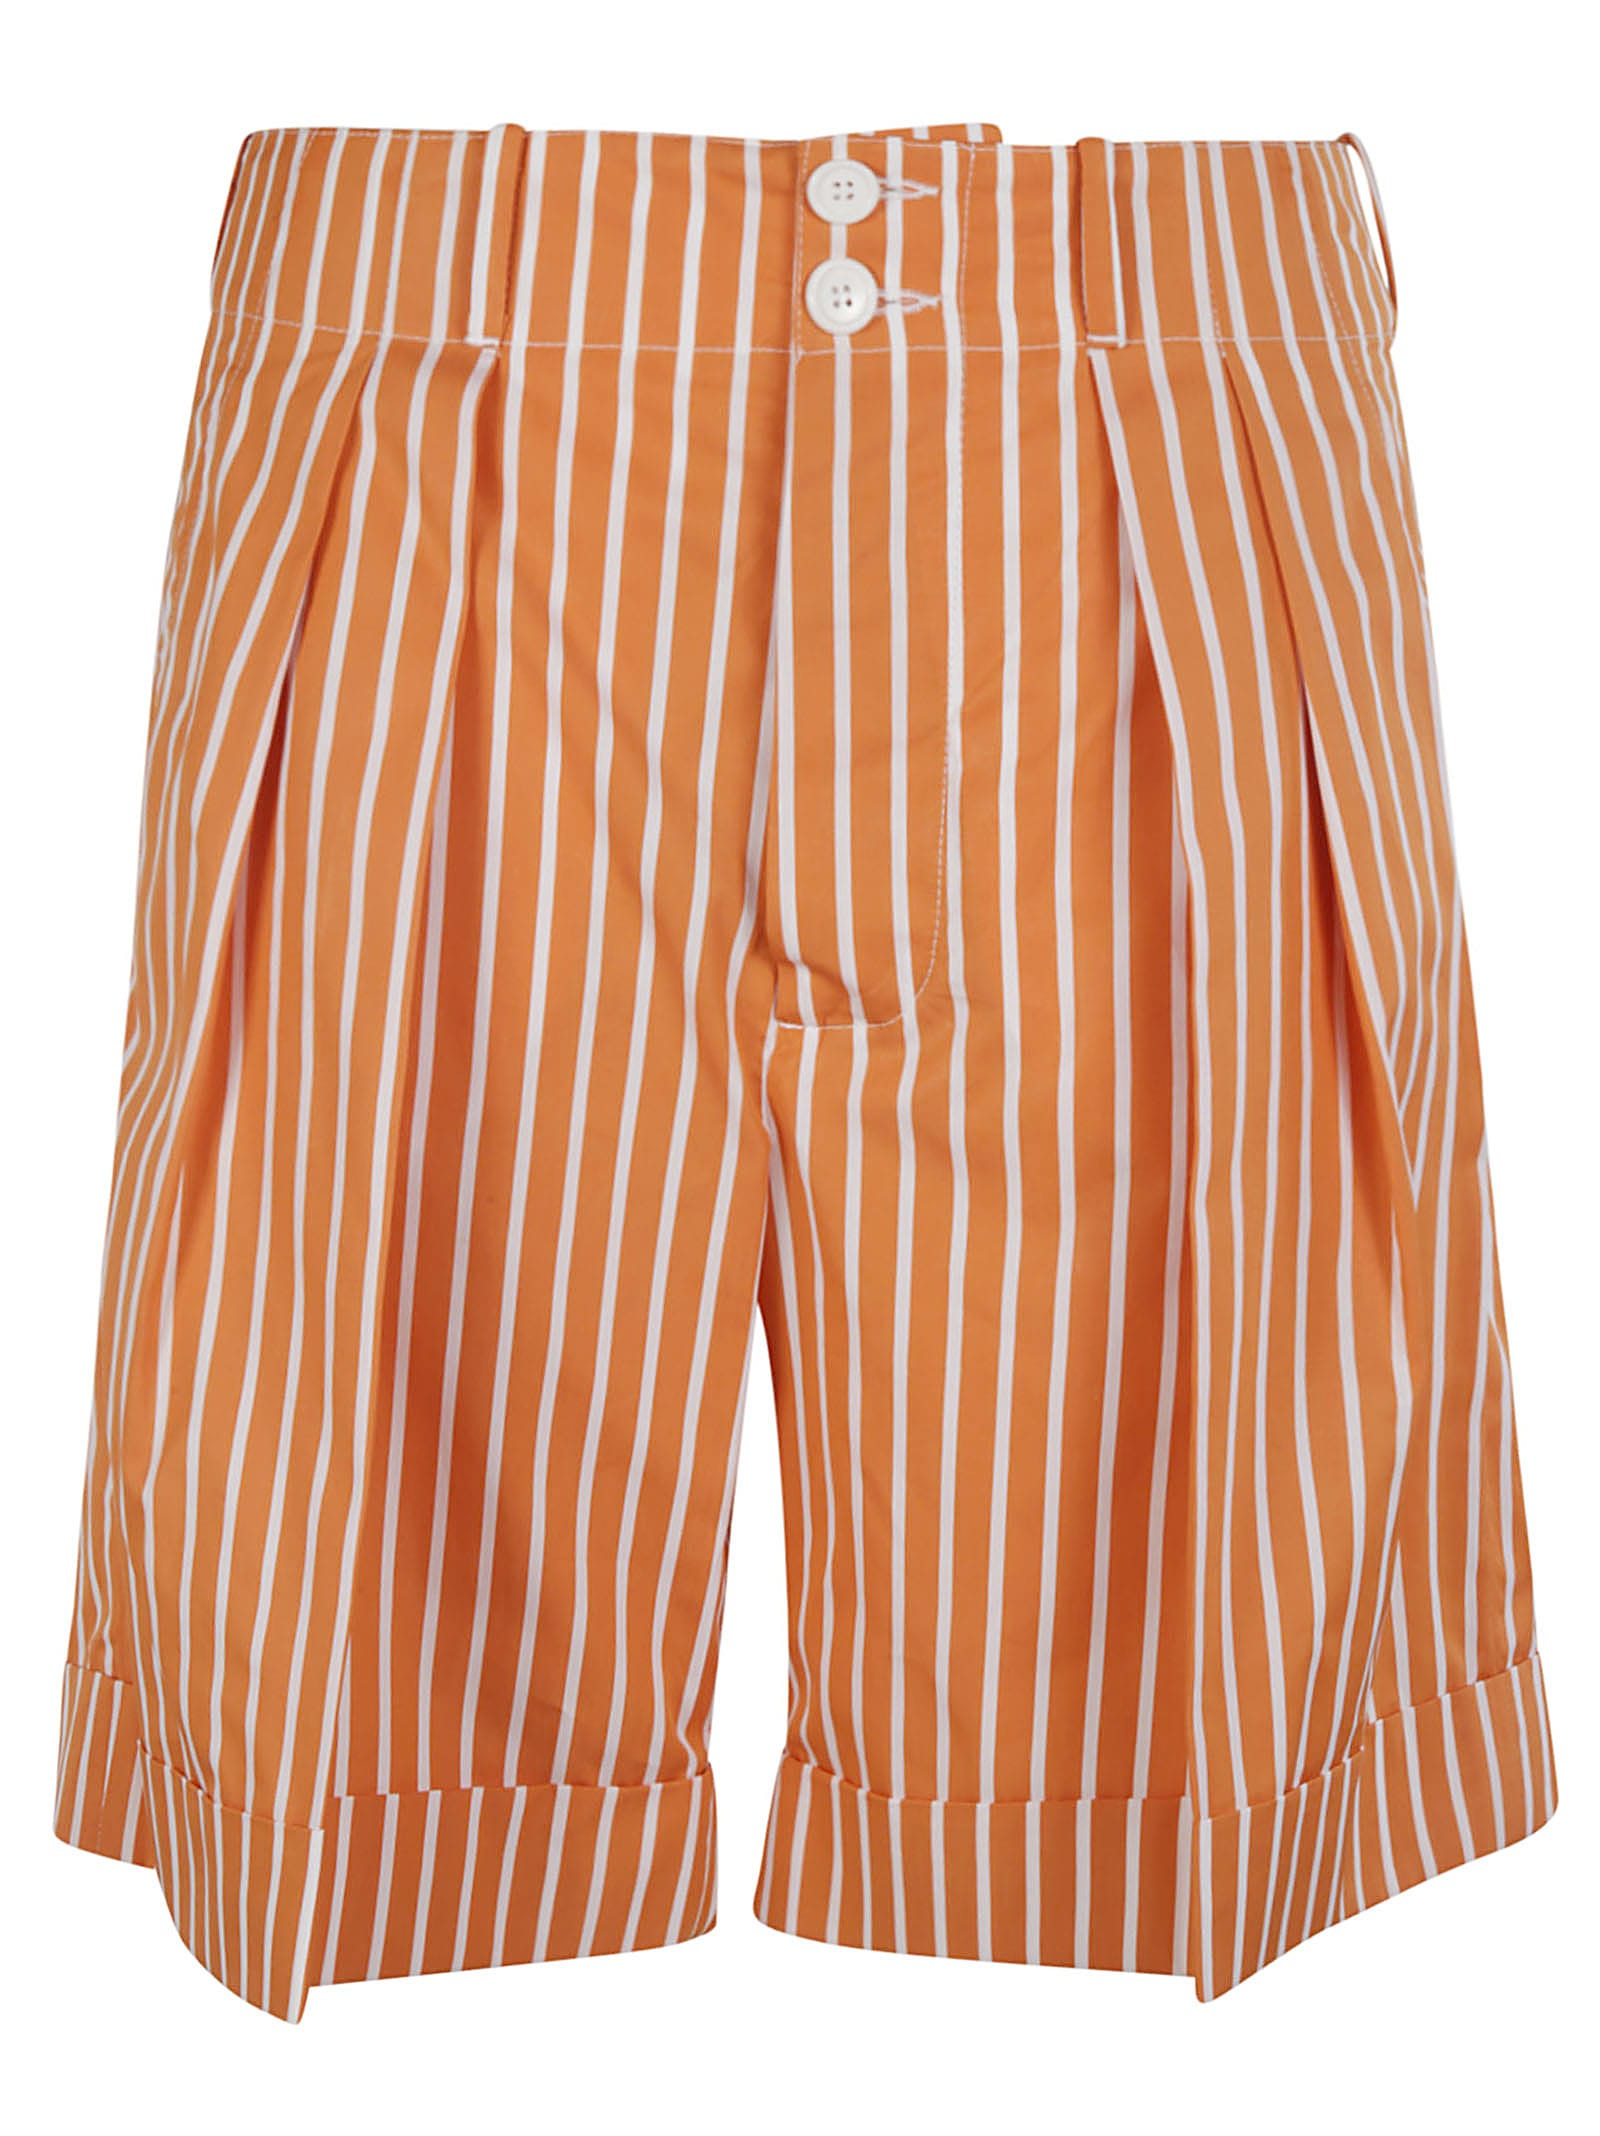 Plan C Cottons STRIPE PRINT SHORTS